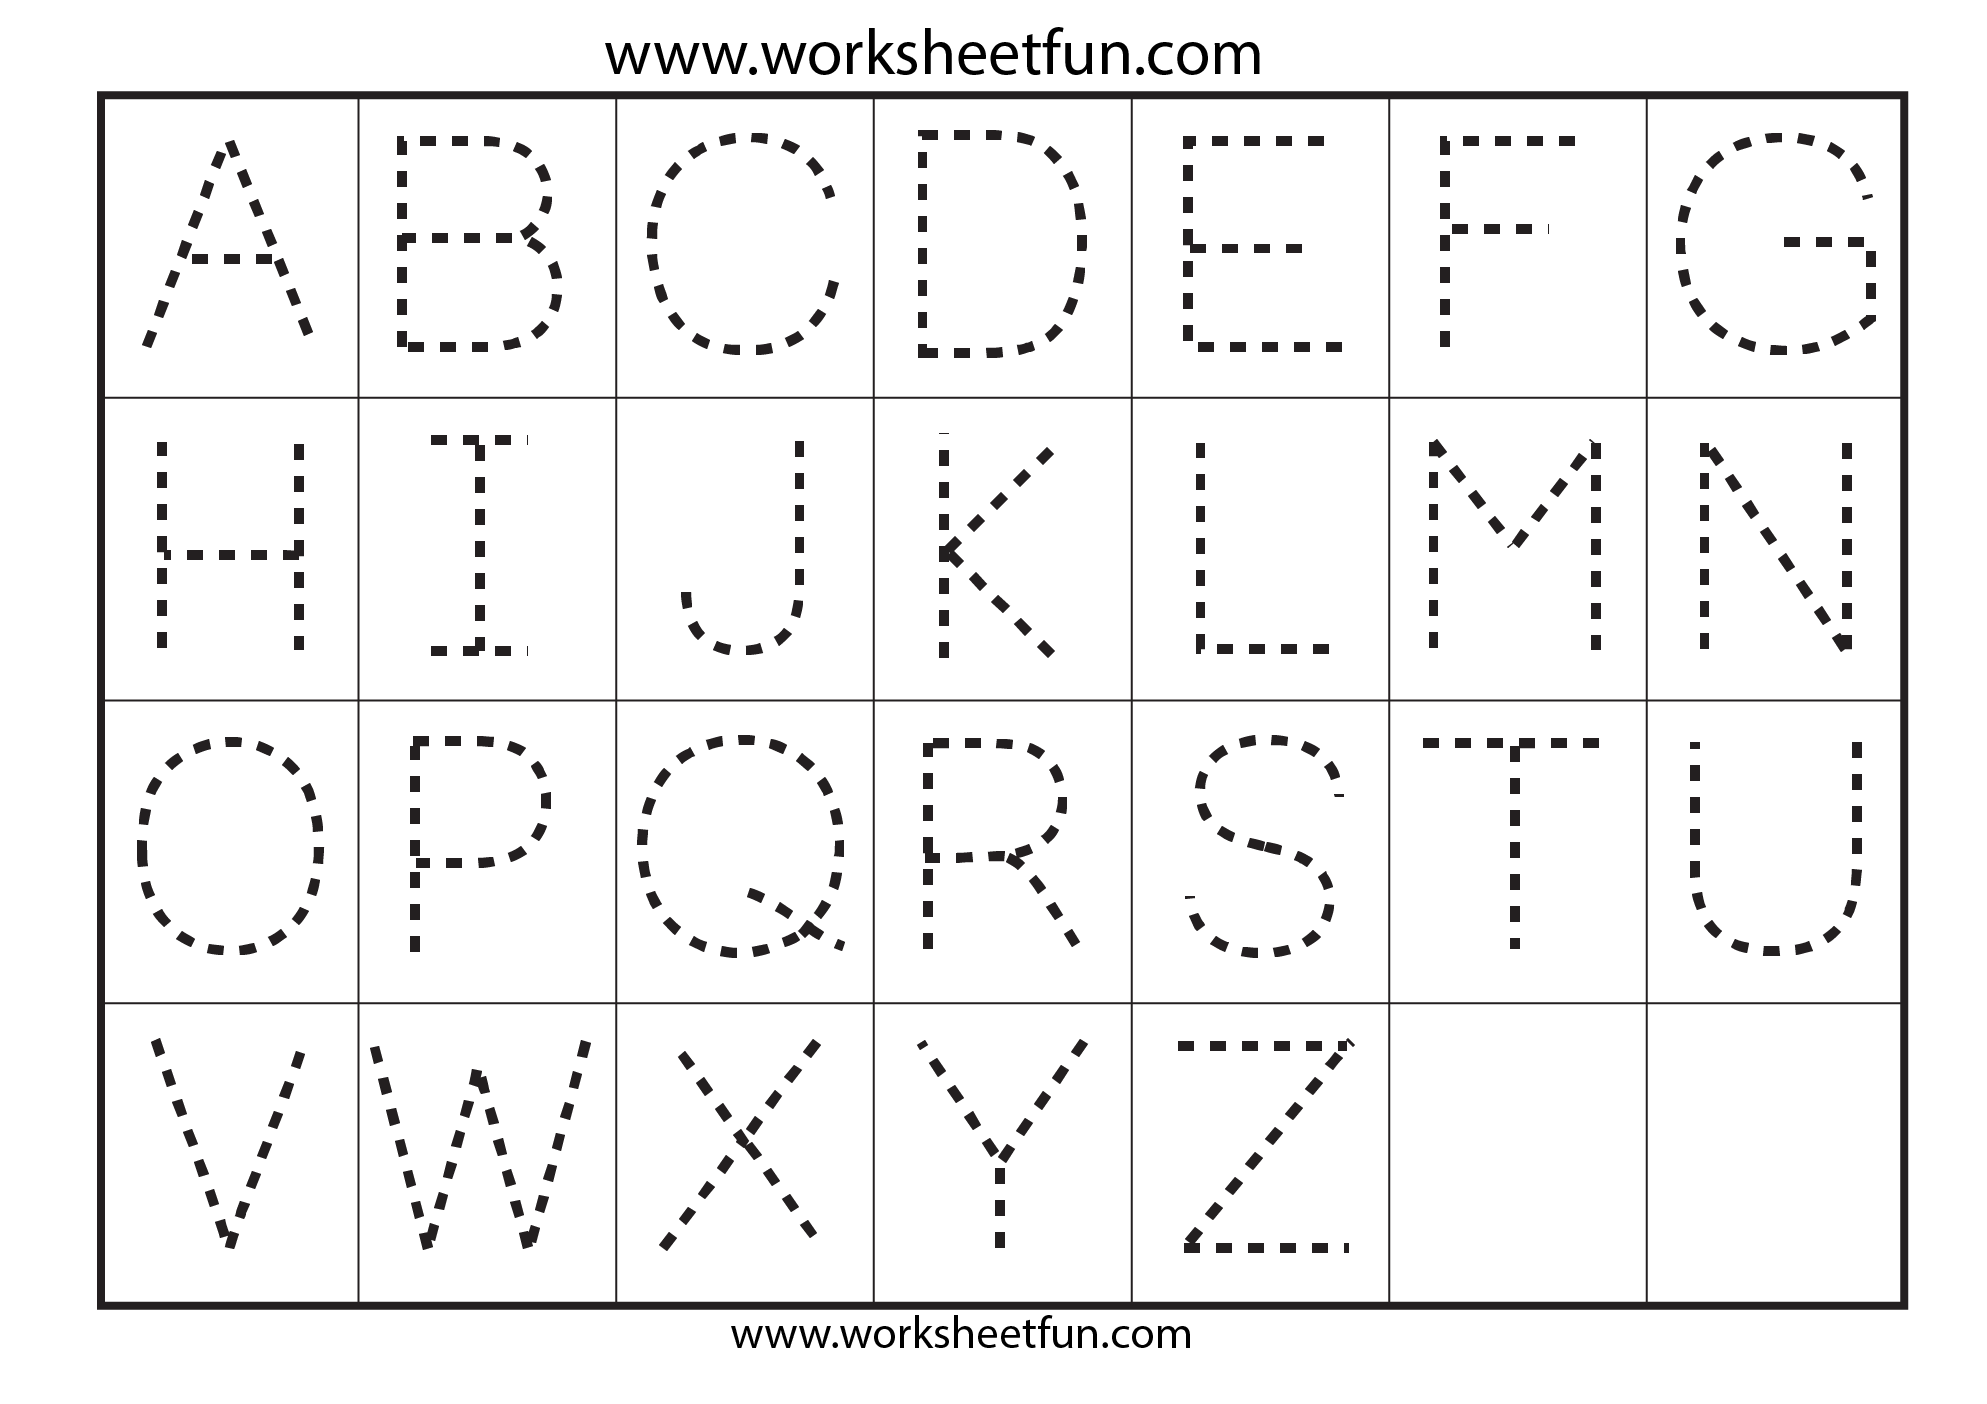 Worksheet Alphabet Worksheets For Pre-k alphabet worksheets pre k intrepidpath printable tracing for sheets